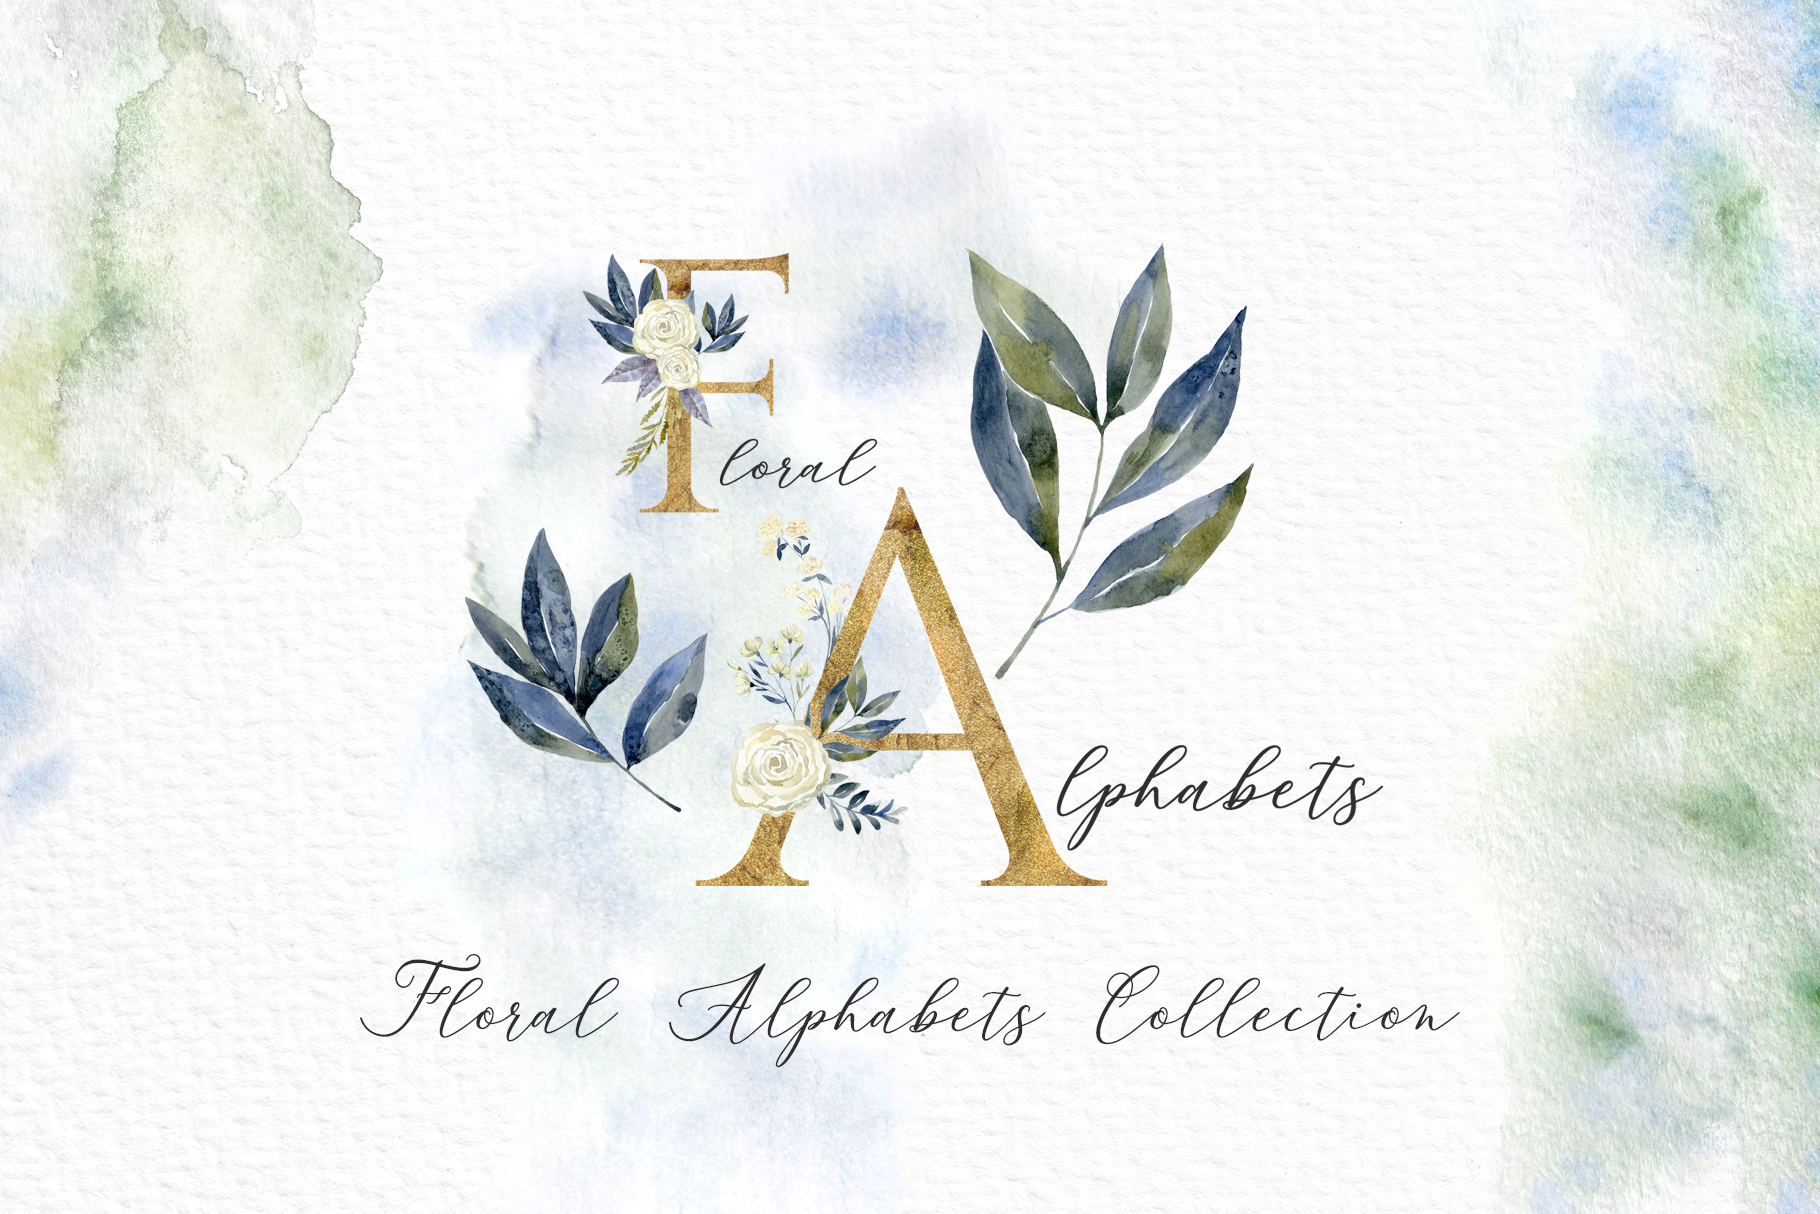 Floral Alphabets Collection. example image 1